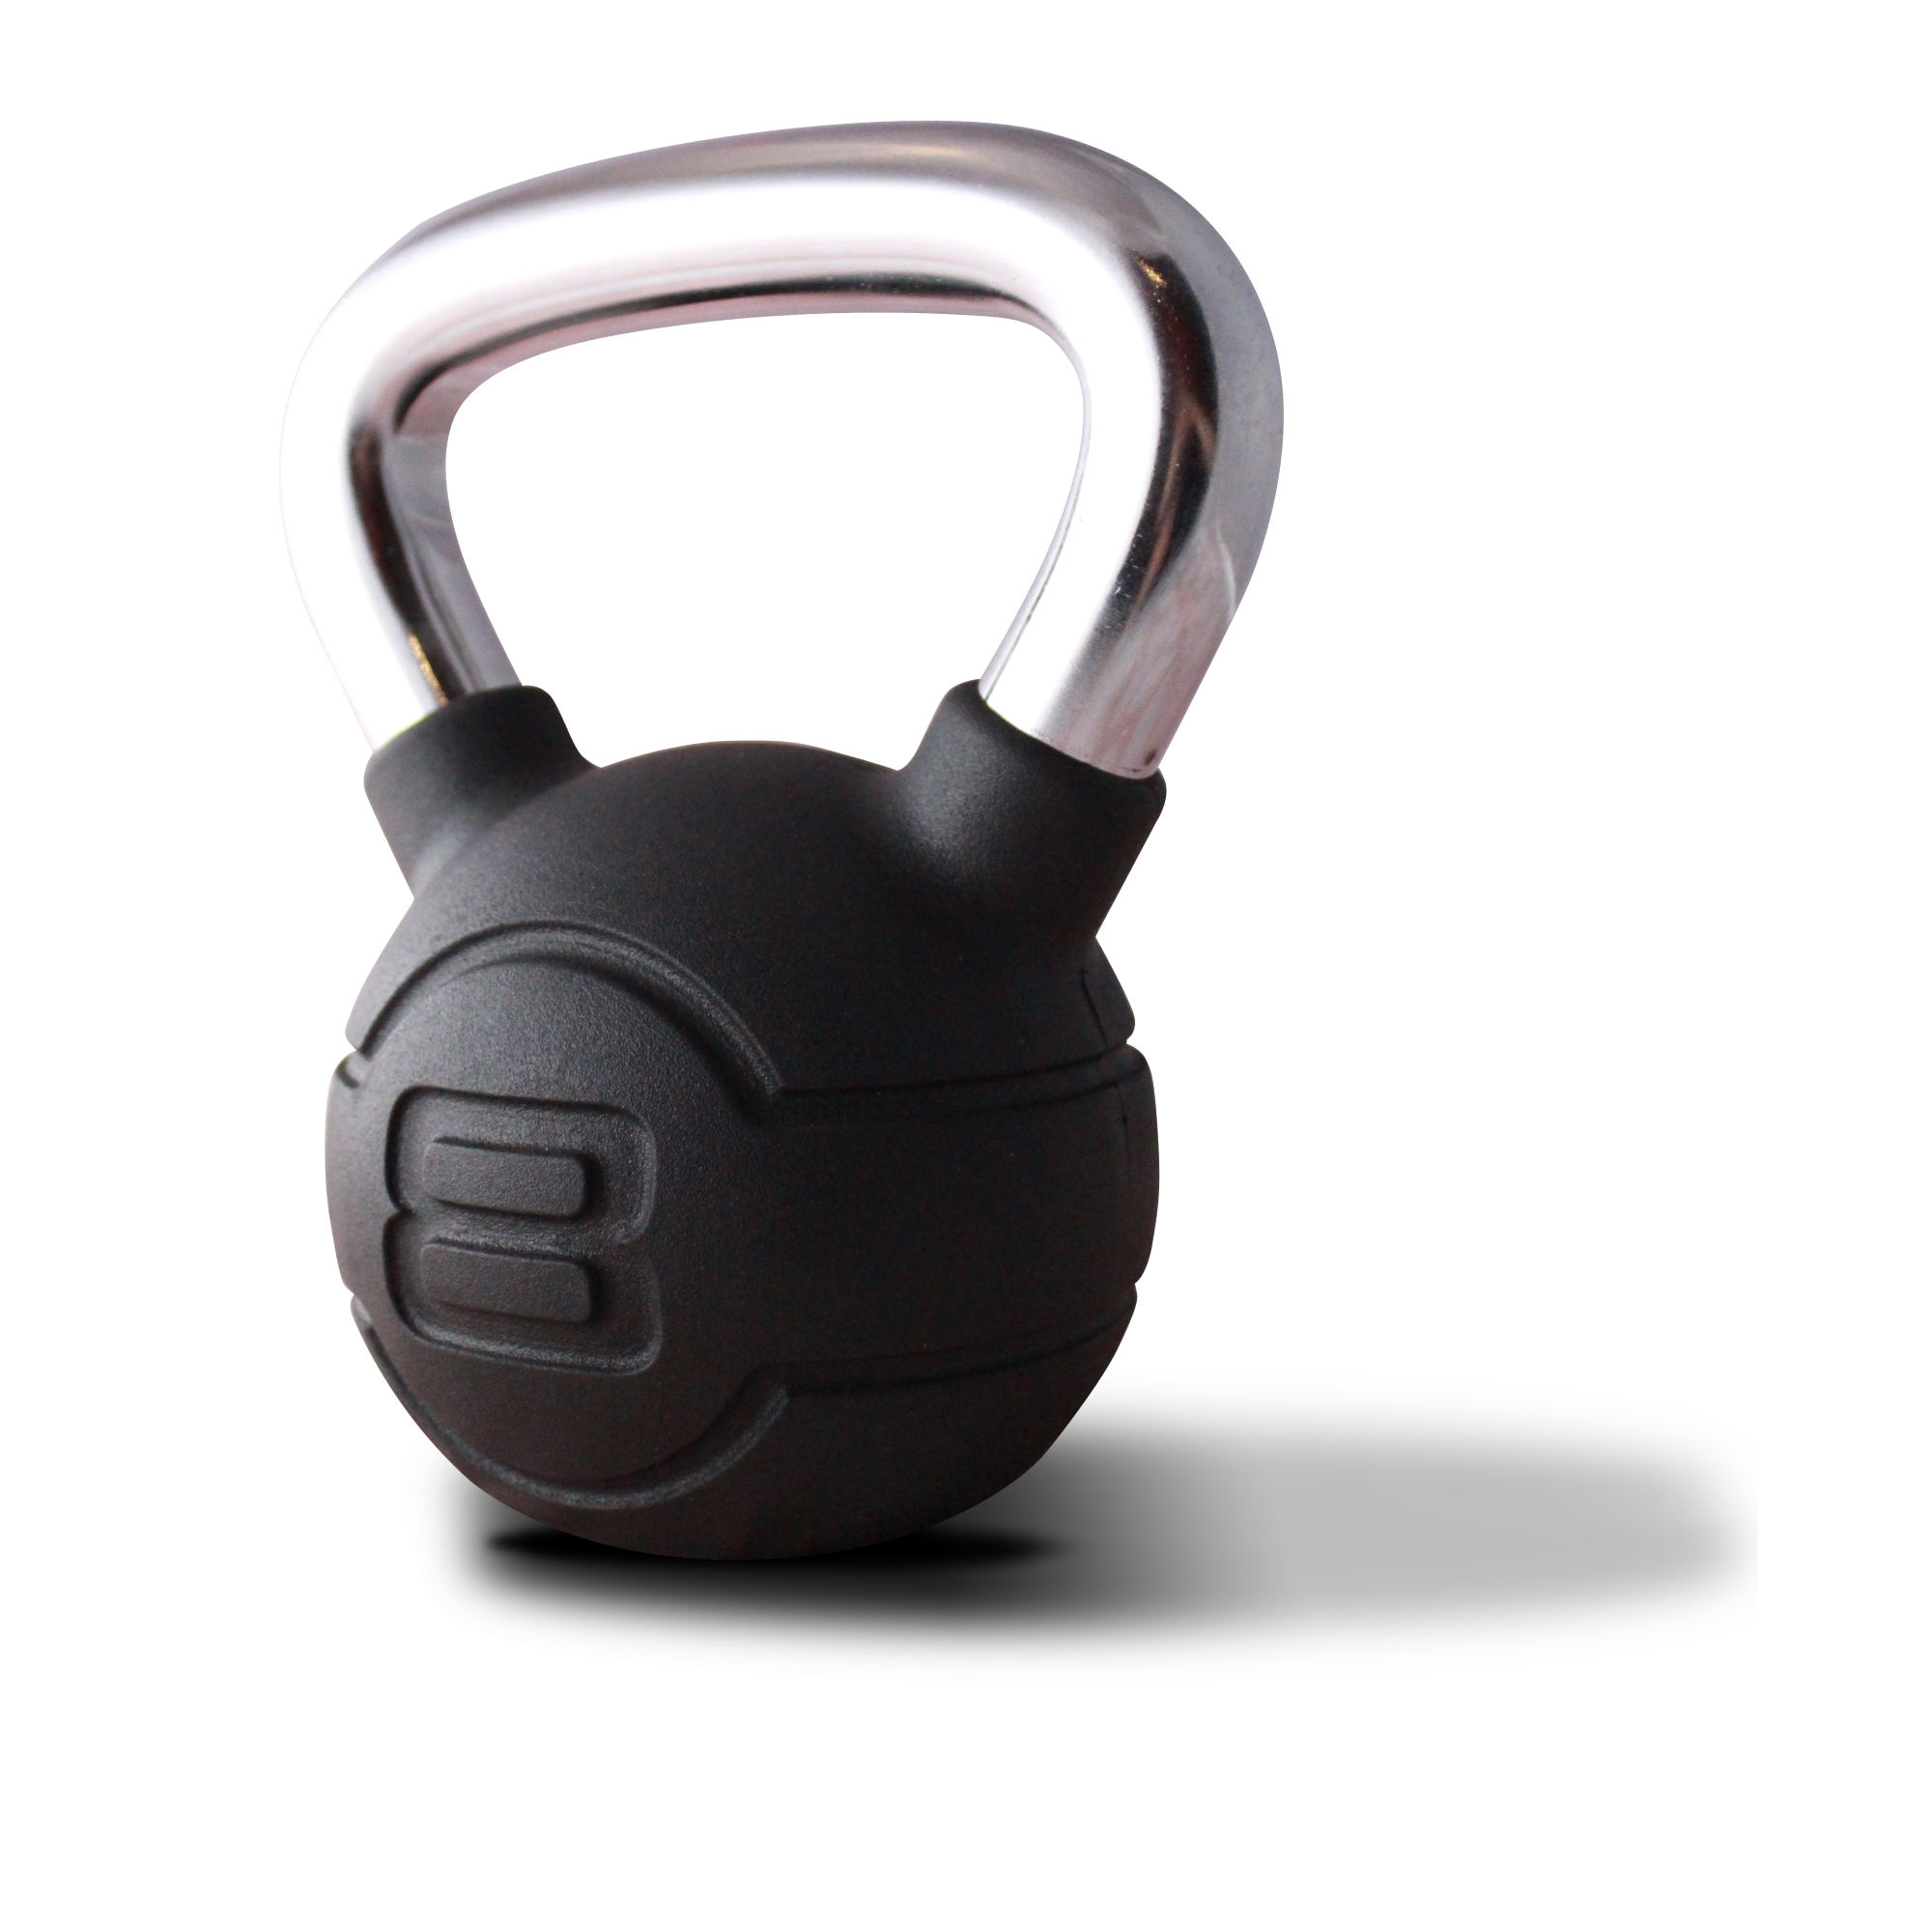 Jordan Black Rubber & Chrome Kettlebell 8kg